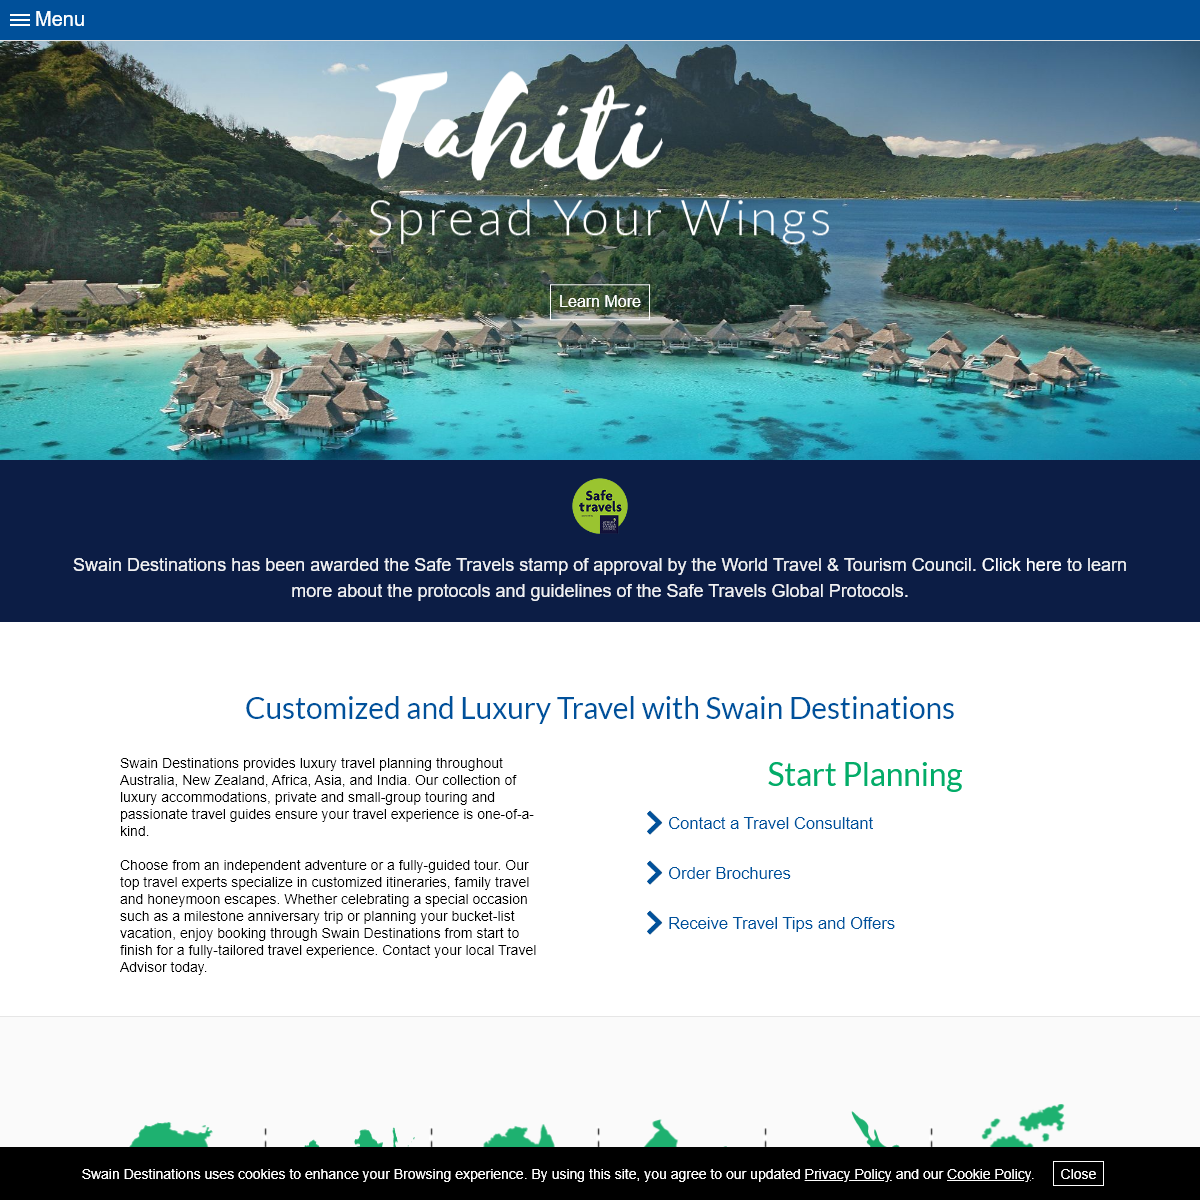 Customized and Luxury Travel with Swain Destinations